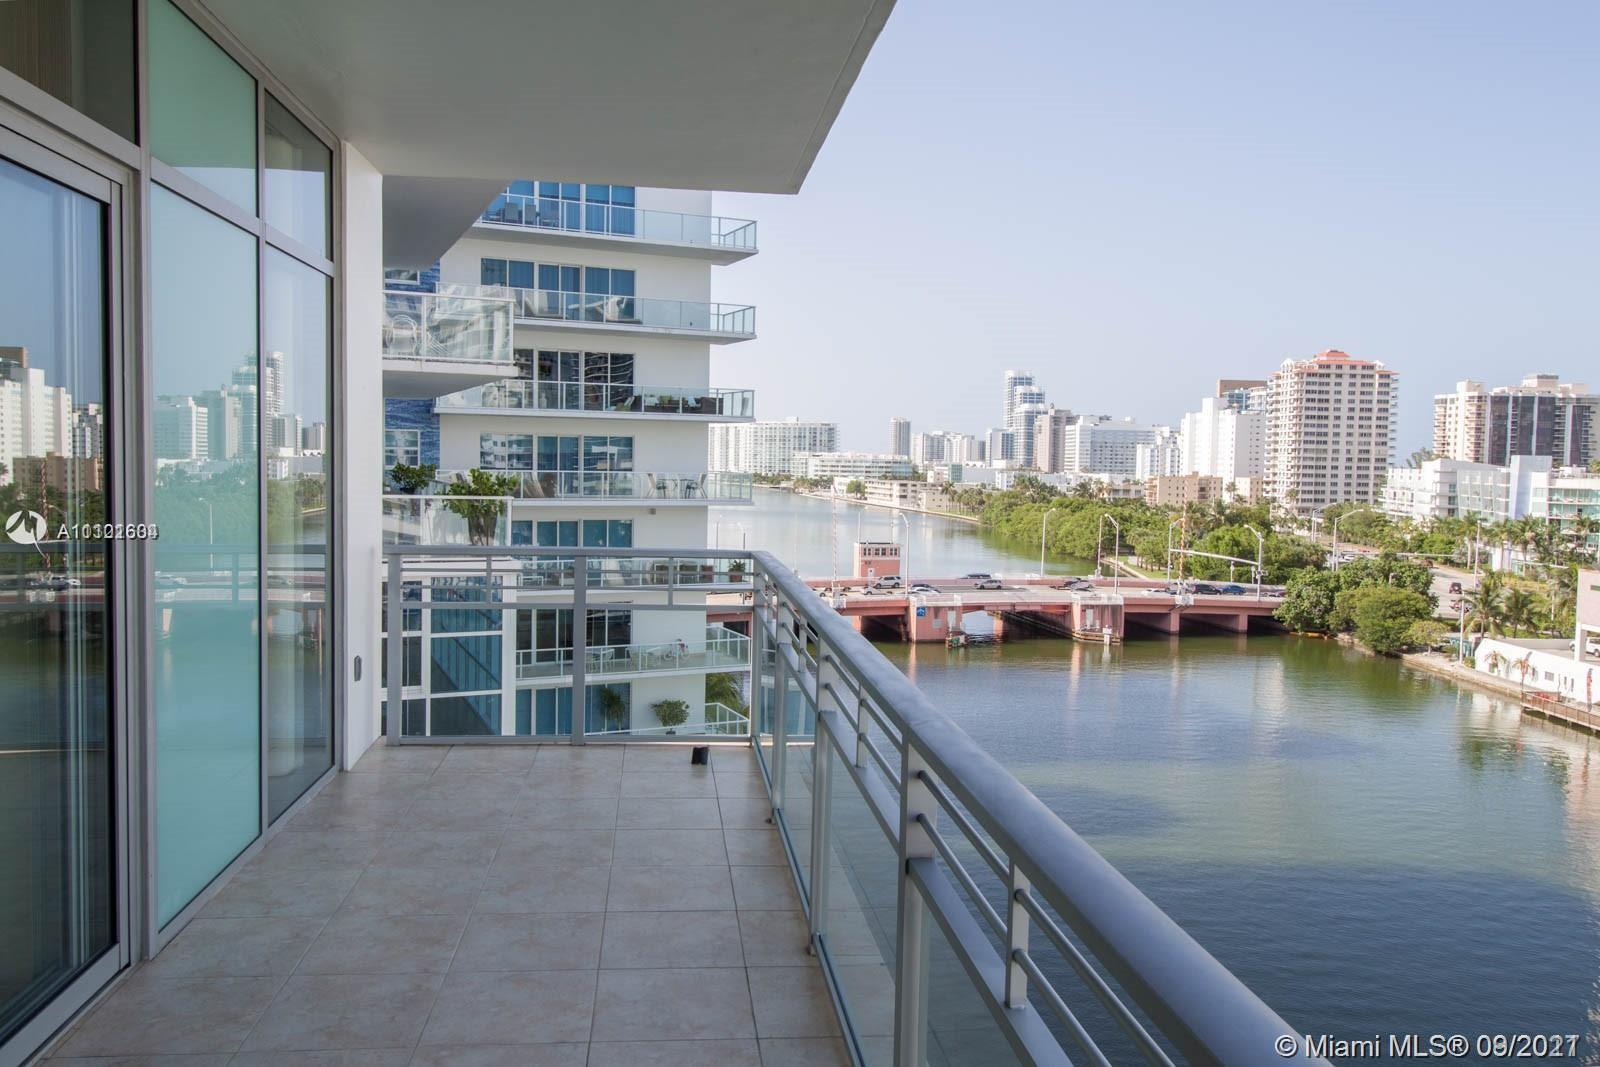 Exclusive, boutique, luxury condo on a gated community in Miami Beach. 3 Bed / 3.5 Bath. Breathtaking views from every room, top of the line appliances, spacious layout. Incredible amenities including, two amazing pools, barbecue, marina, 5,000 Sqft fitness center, party room, kids play area, 24 hour valet parking, security and much more. Just a few blocks from the beach. Don't miss the opportunity to live on this high-class private island and enjoy its lifestyle. Very easy to show!